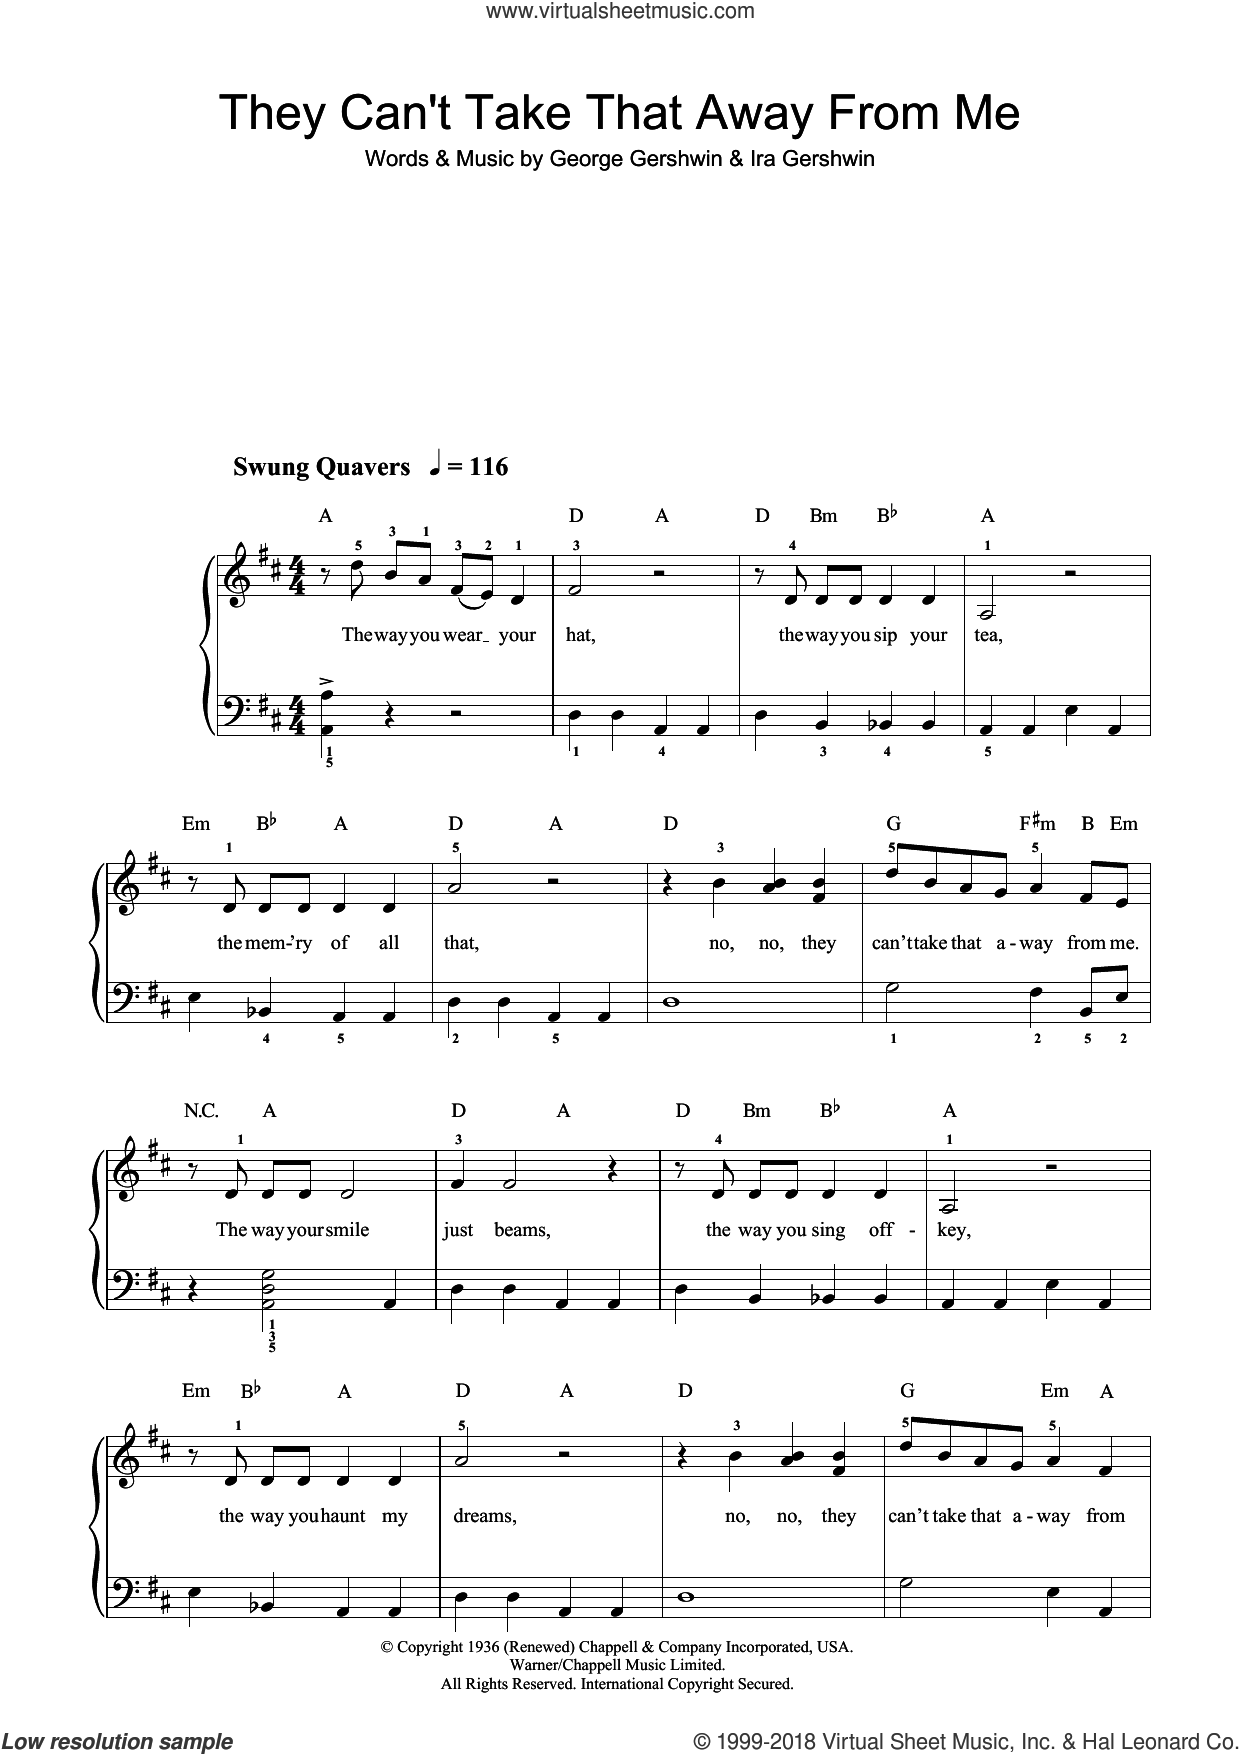 They Can't Take That Away From Me sheet music for piano solo by Ira Gershwin and George Gershwin. Score Image Preview.